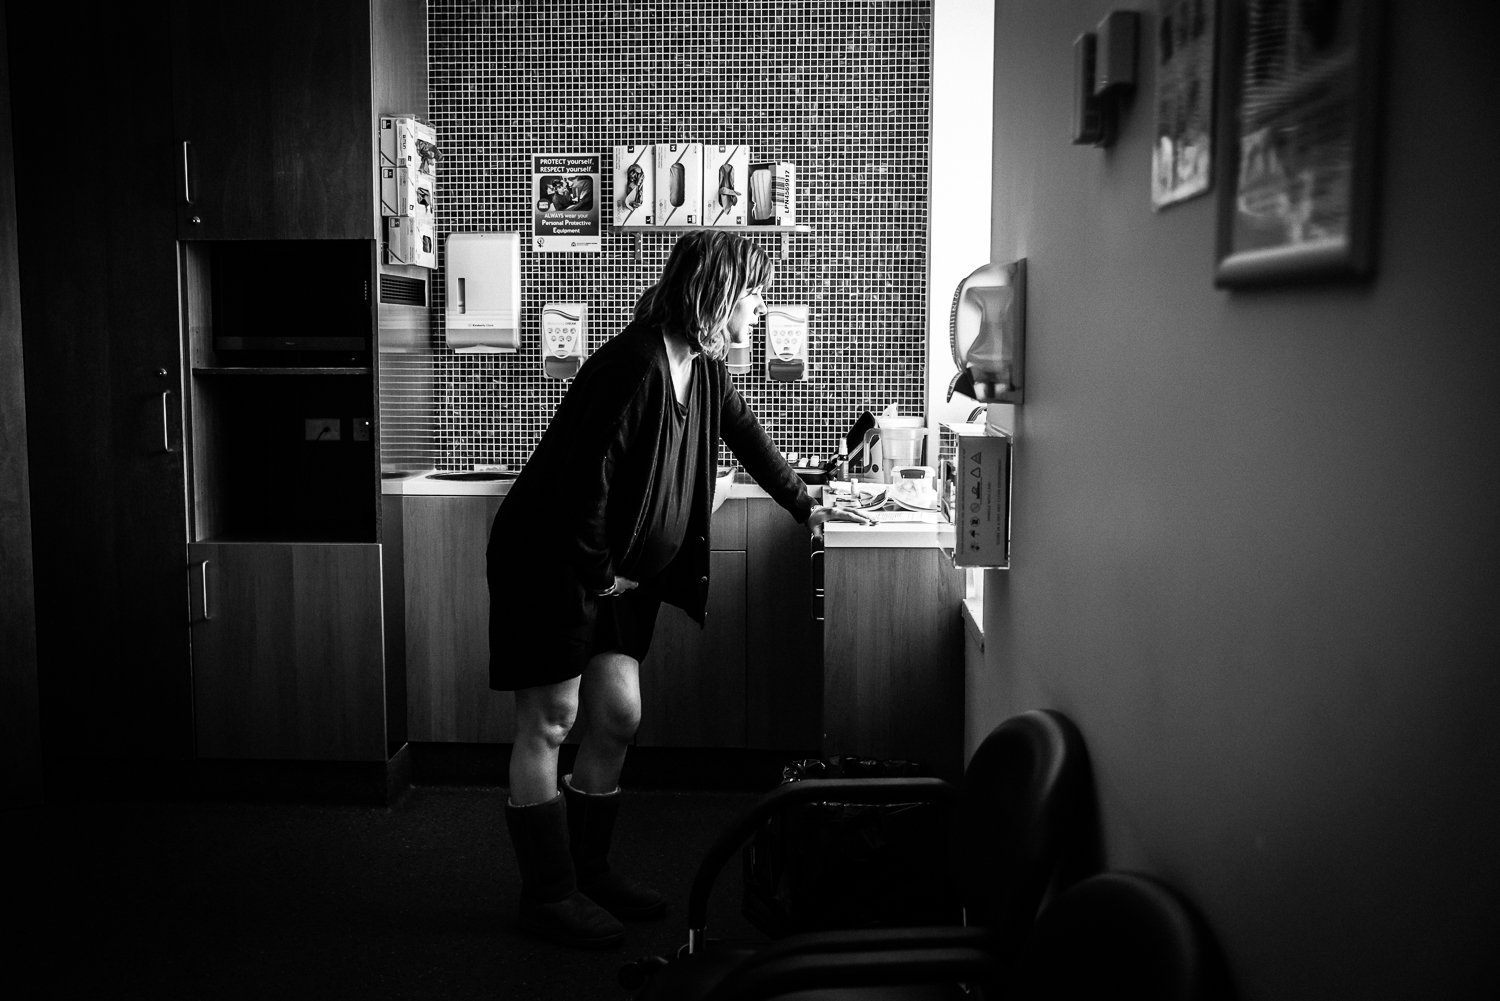 Perth-Birth-Photography-by-Cat-Fancote-Labouring-by-window-light.jpg